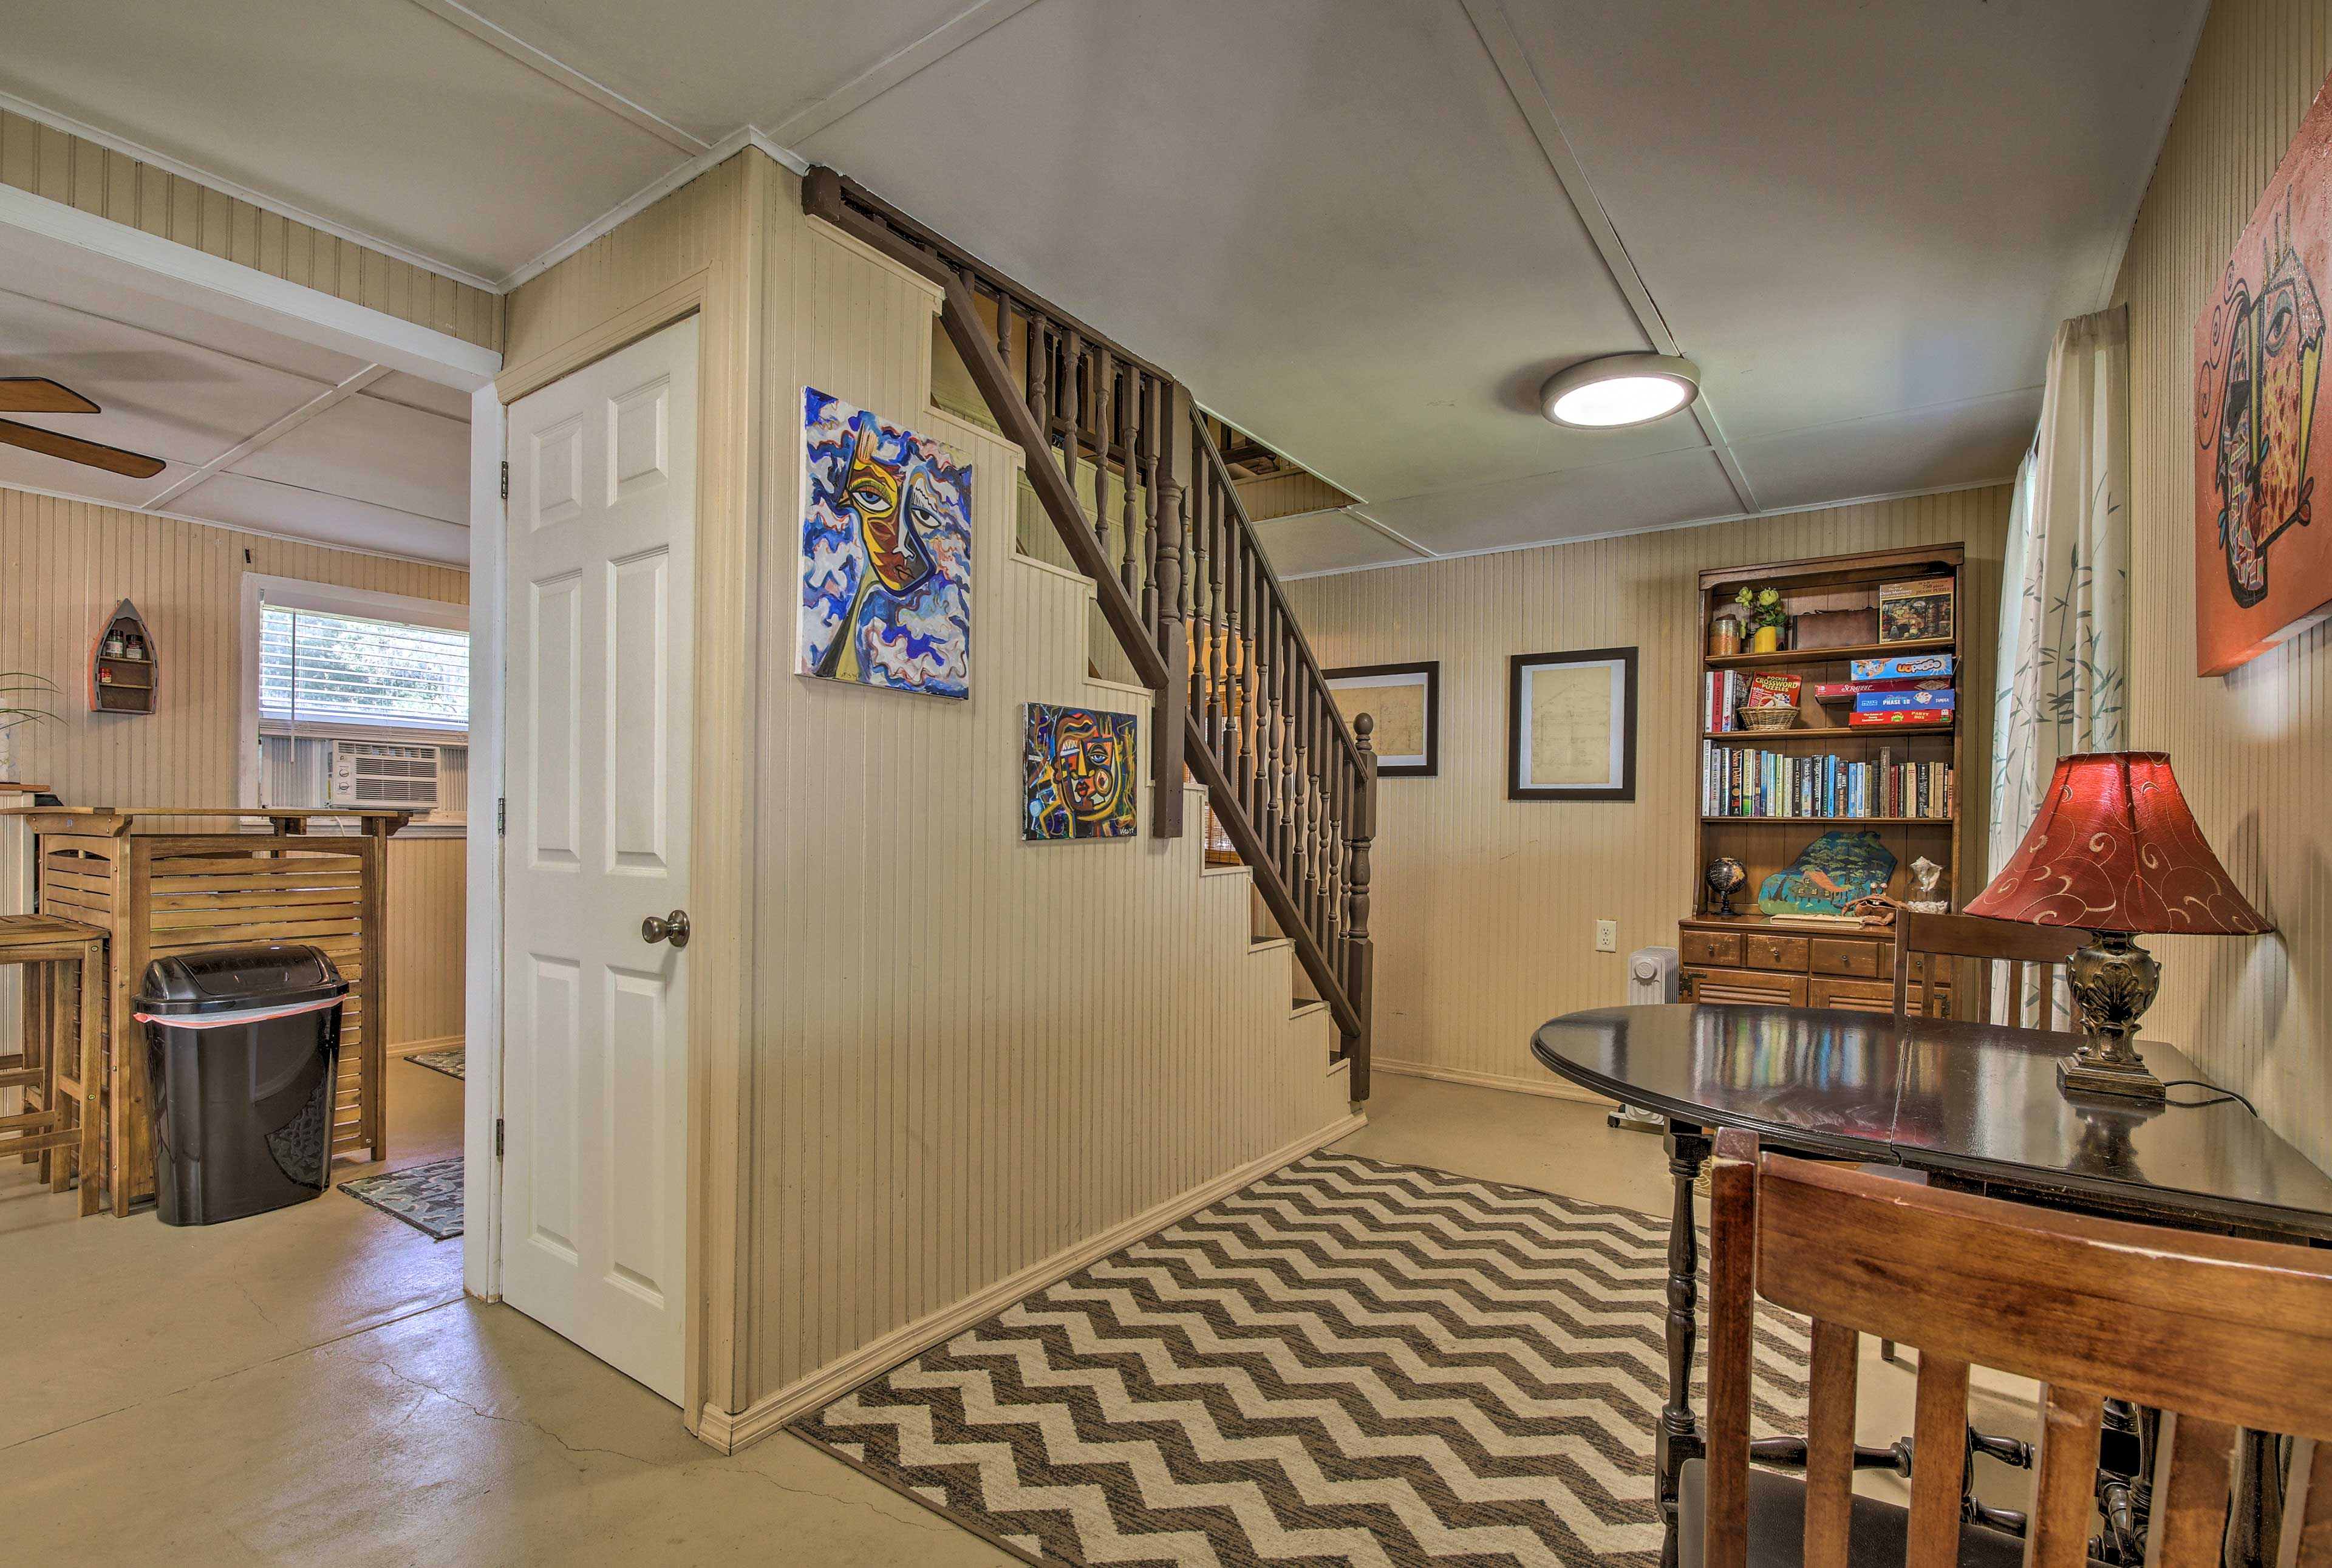 Head upstairs to access the bedroom.